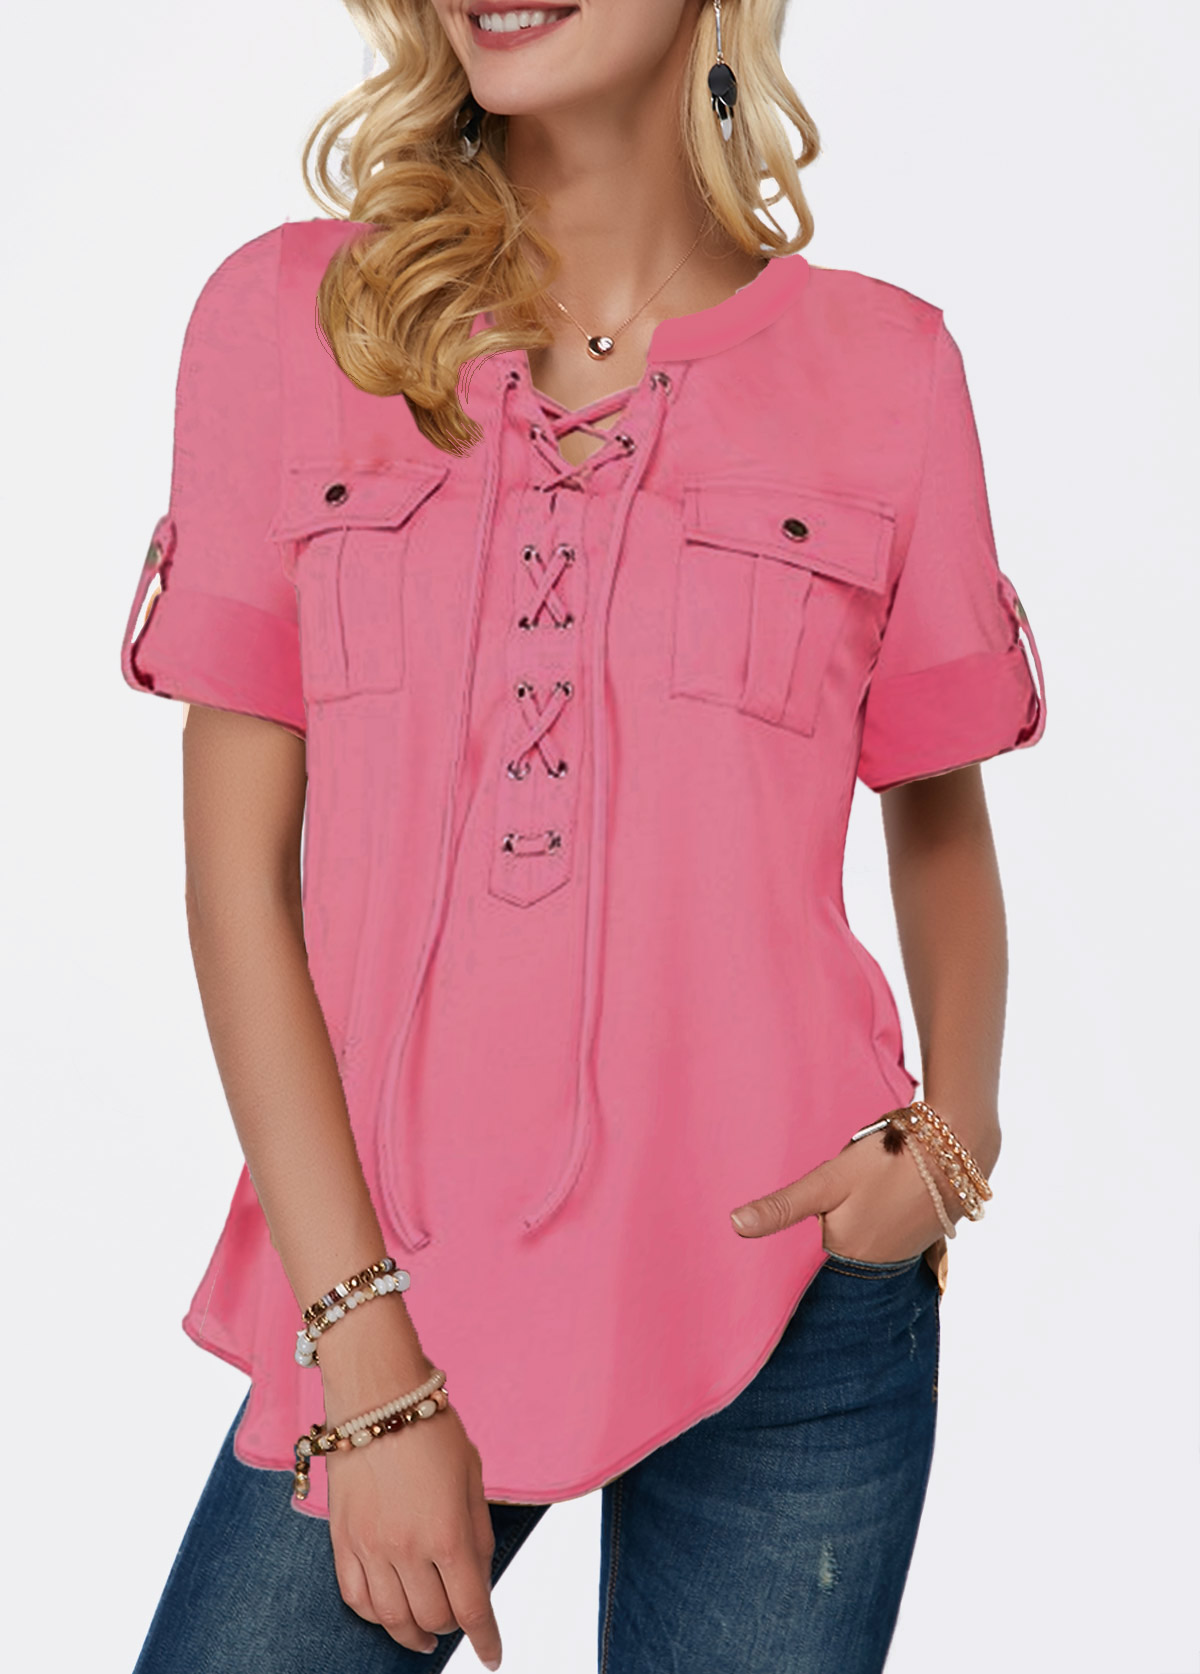 Lace Up Front Pocket Detail Pink Blouse